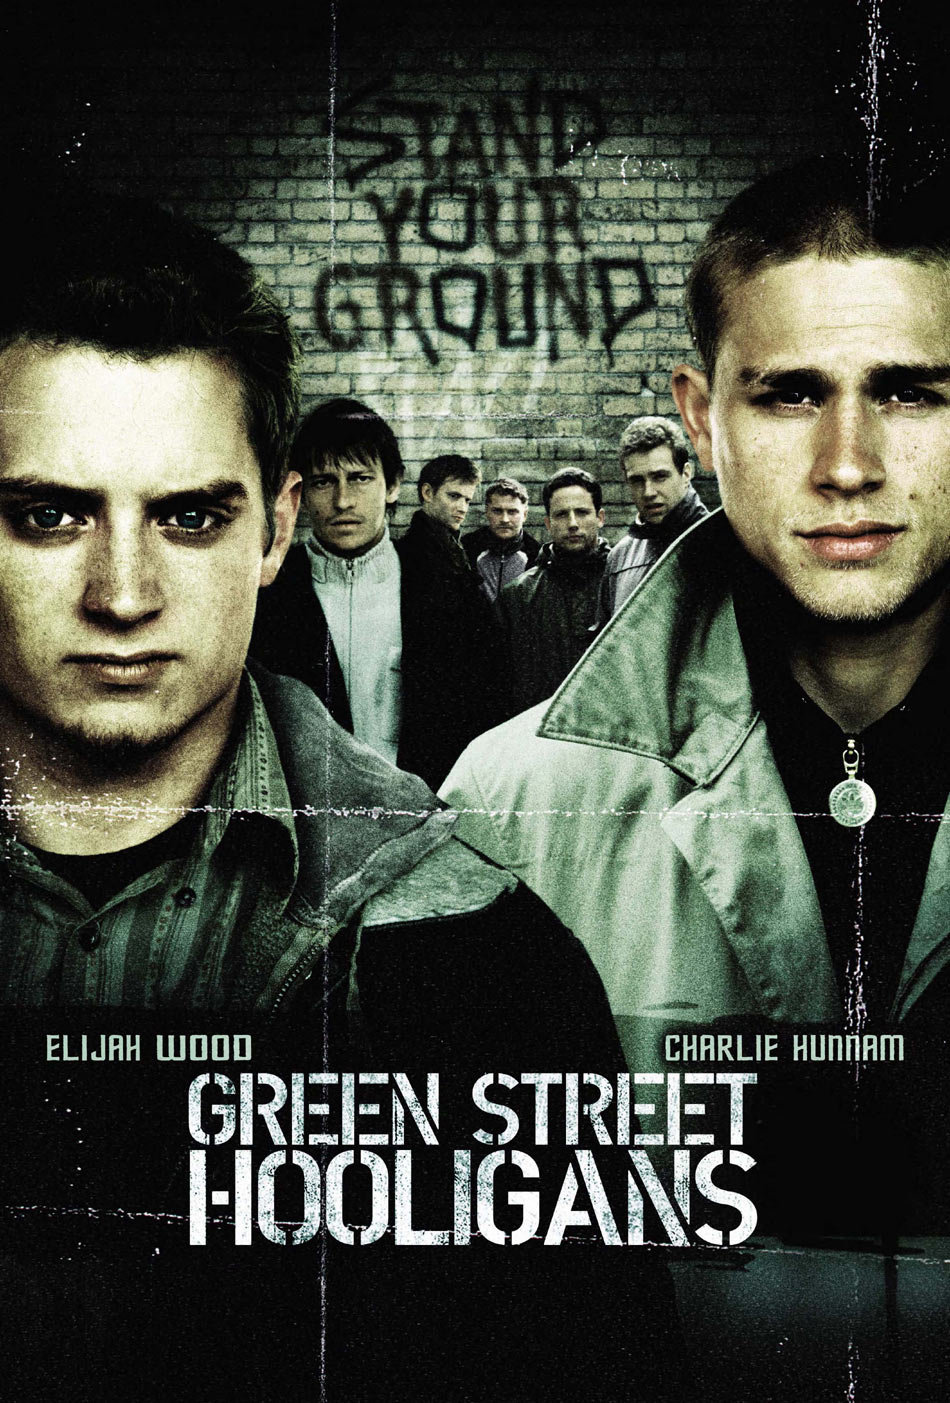 Green Street Hooligans (2005) BluRay 480p, 720p & 1080p